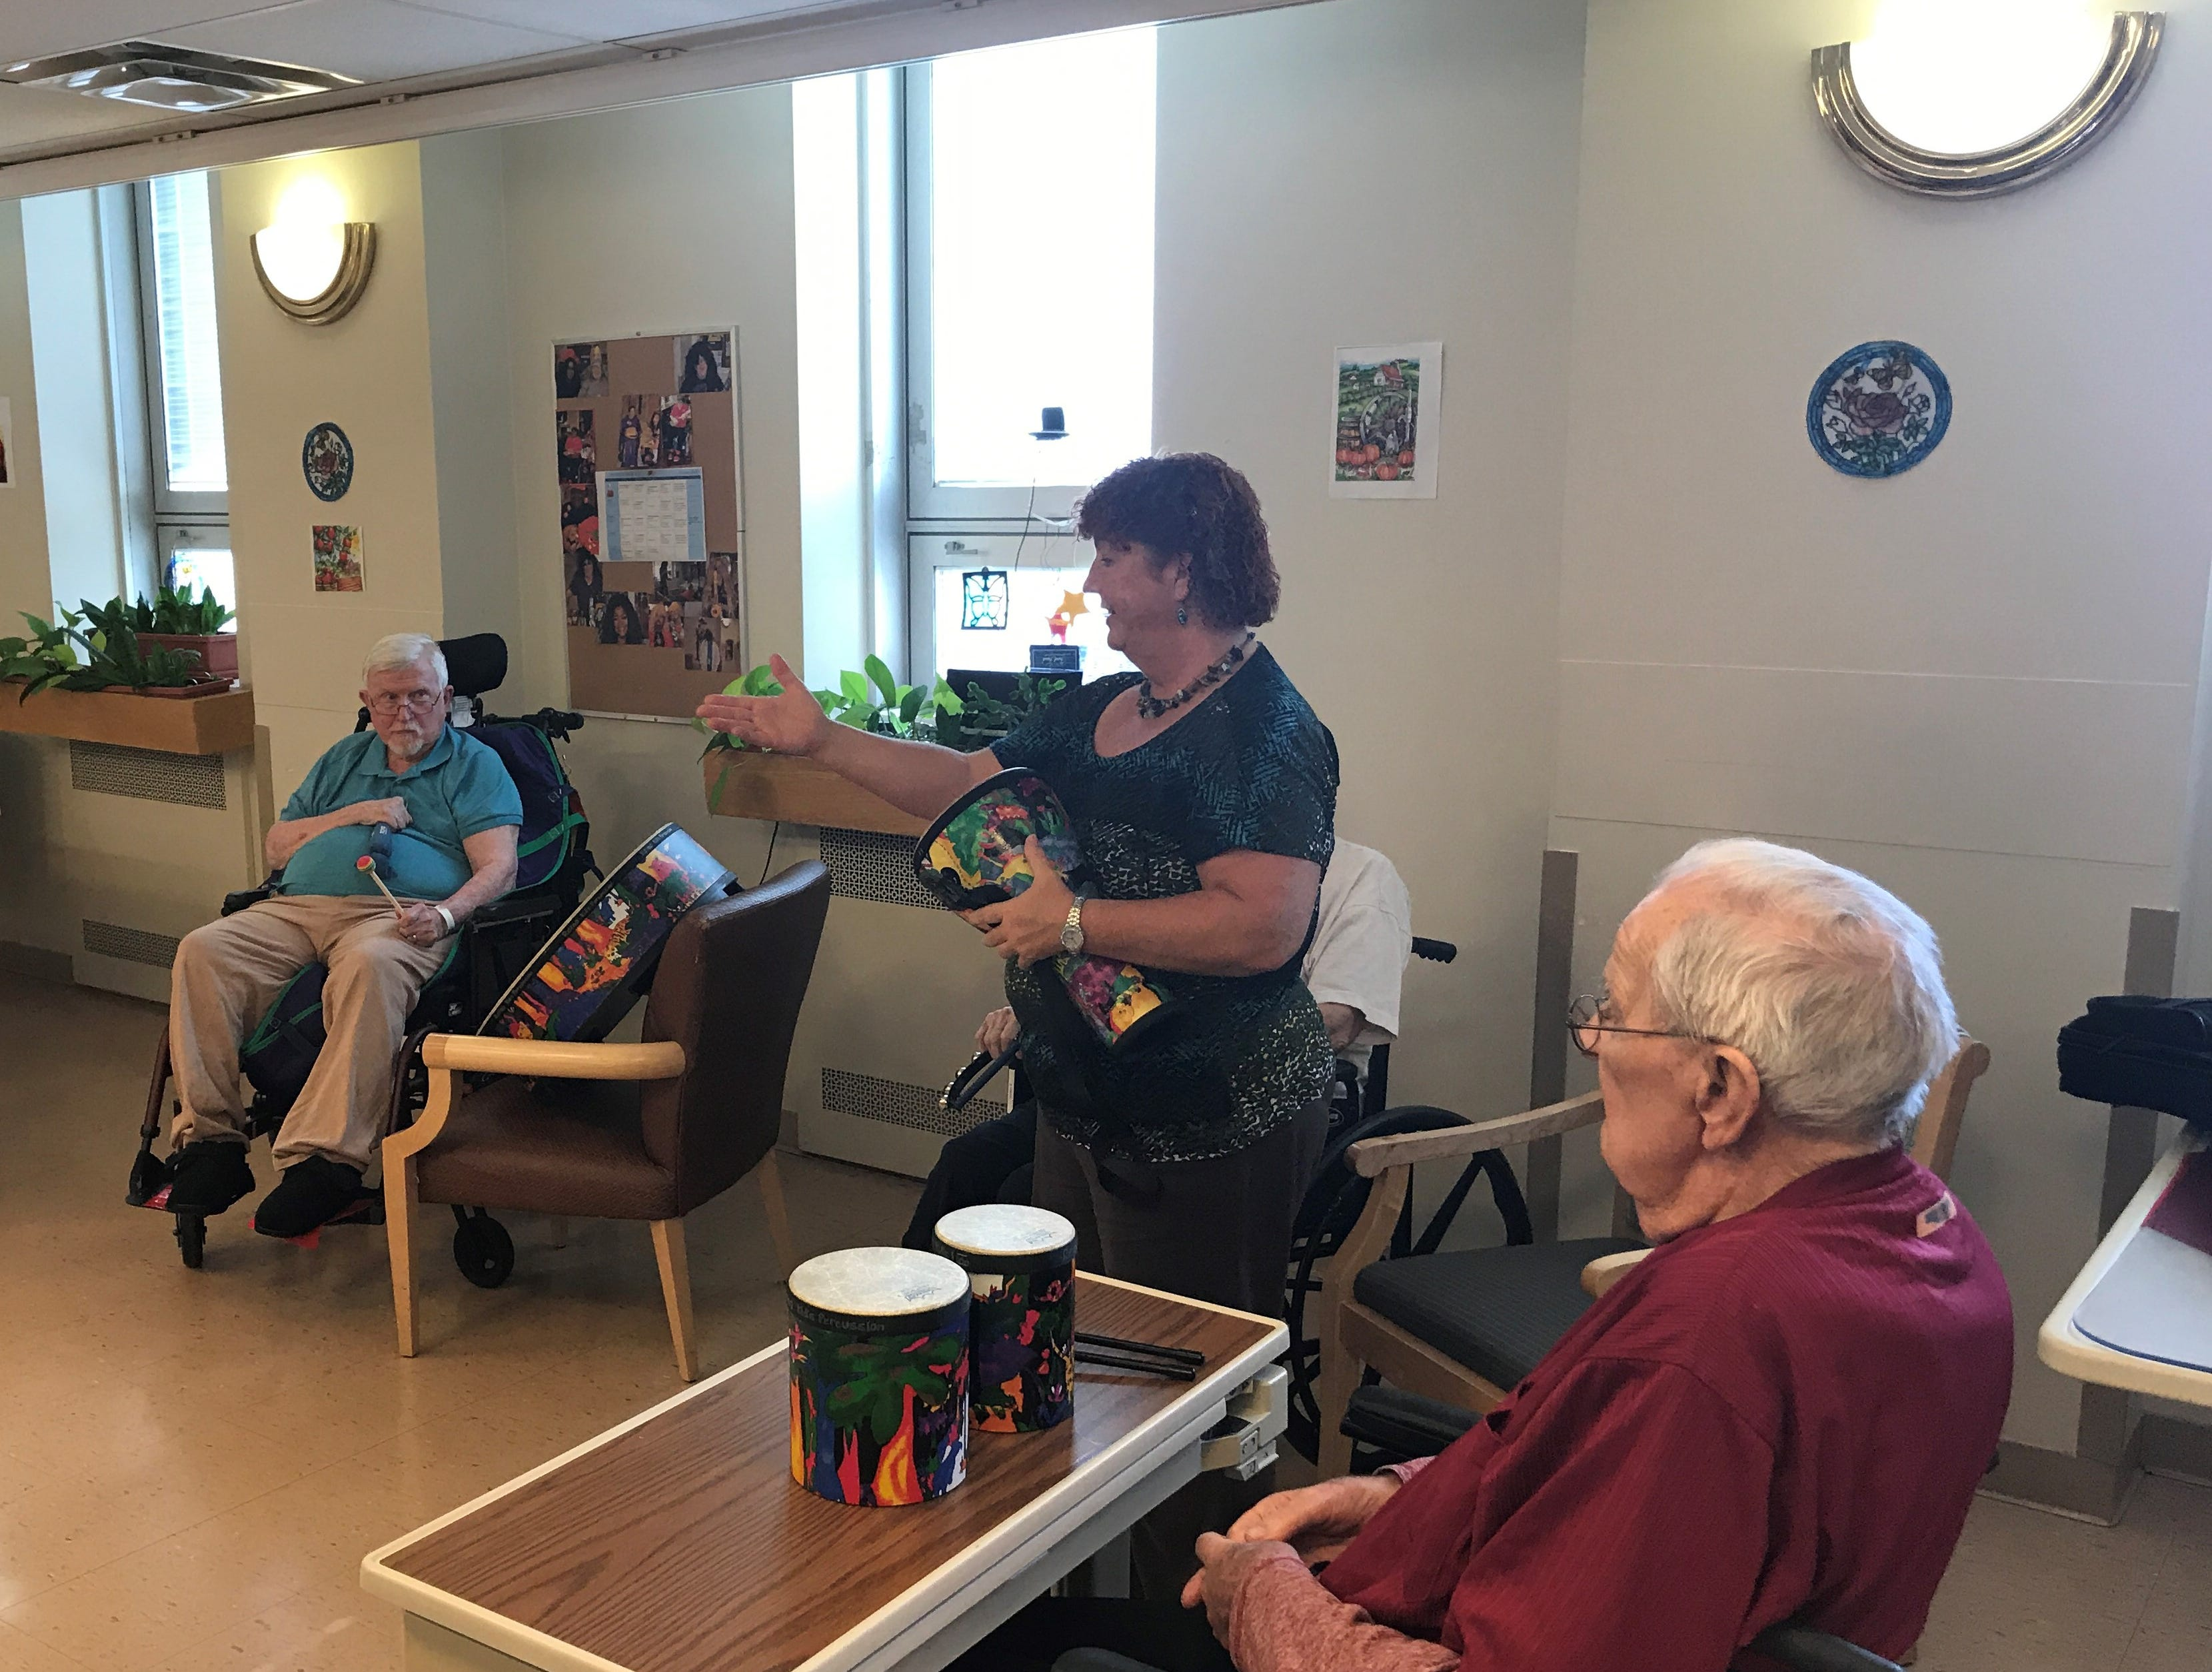 Recreational therapist Sybil Stambaugh leads a drum circle for veterans and Cedar Crest students at the Lebanon VA Medical Center on Oct. 17, 2018.